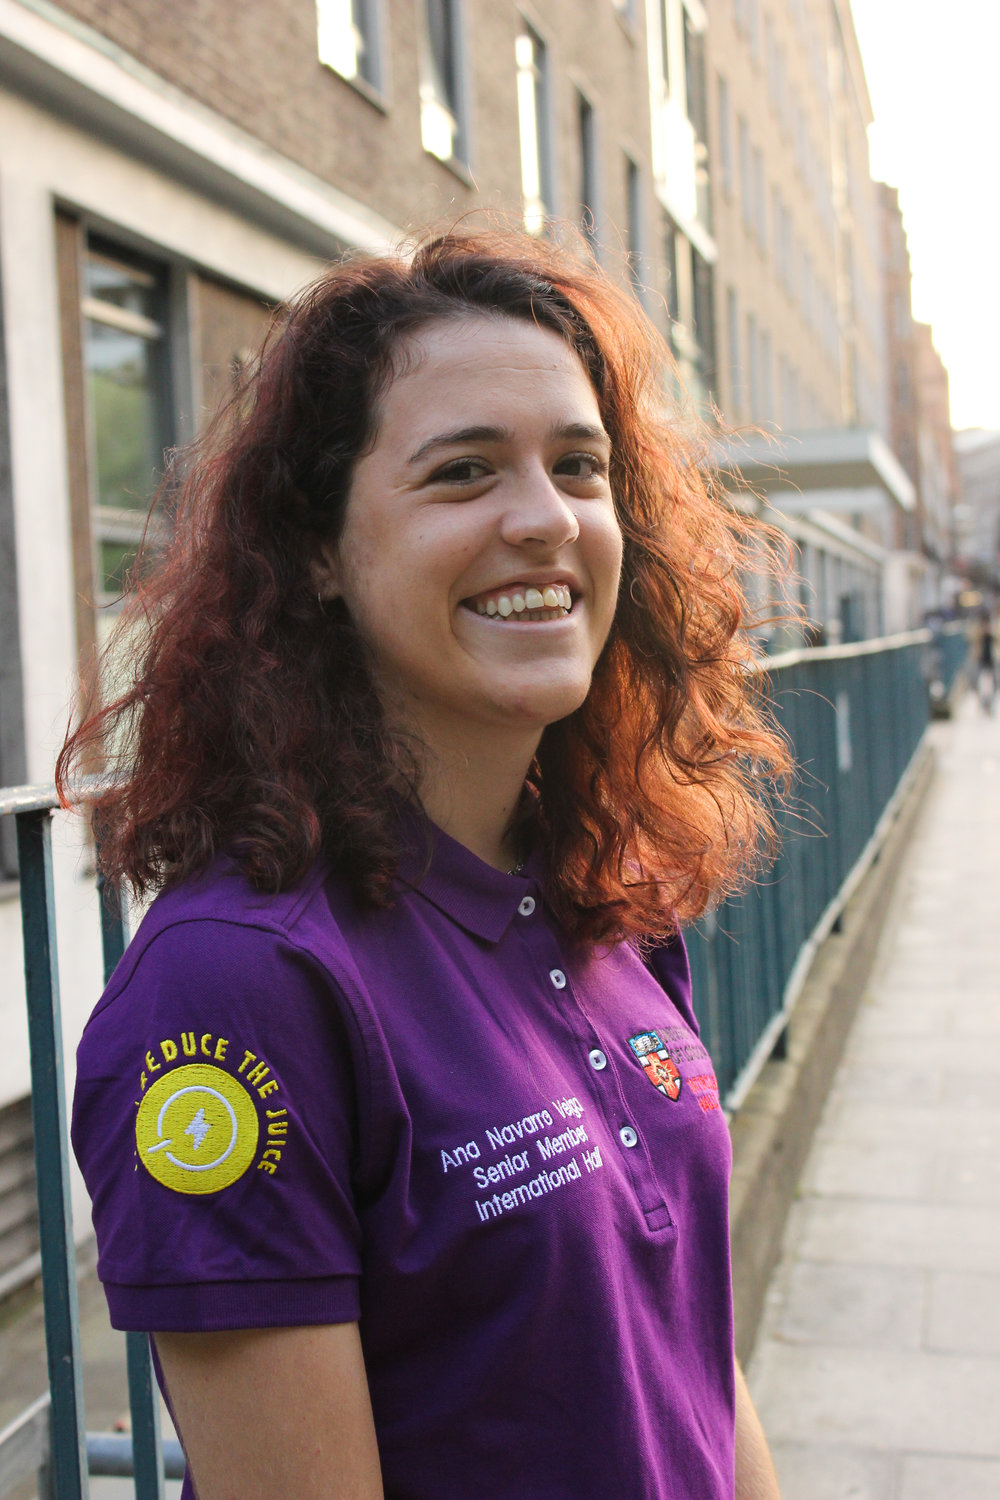 Ana Navarro Veiga Senior Member Ana is studying Politics, Philosophy and Law at King's College London.  At IH, Ana (with Ed) is responsible for advising the IH Community Volunteers. Committee  Fun fact: Ana has a twin sister.  Ana can be reached at ana@internationalhall.com.